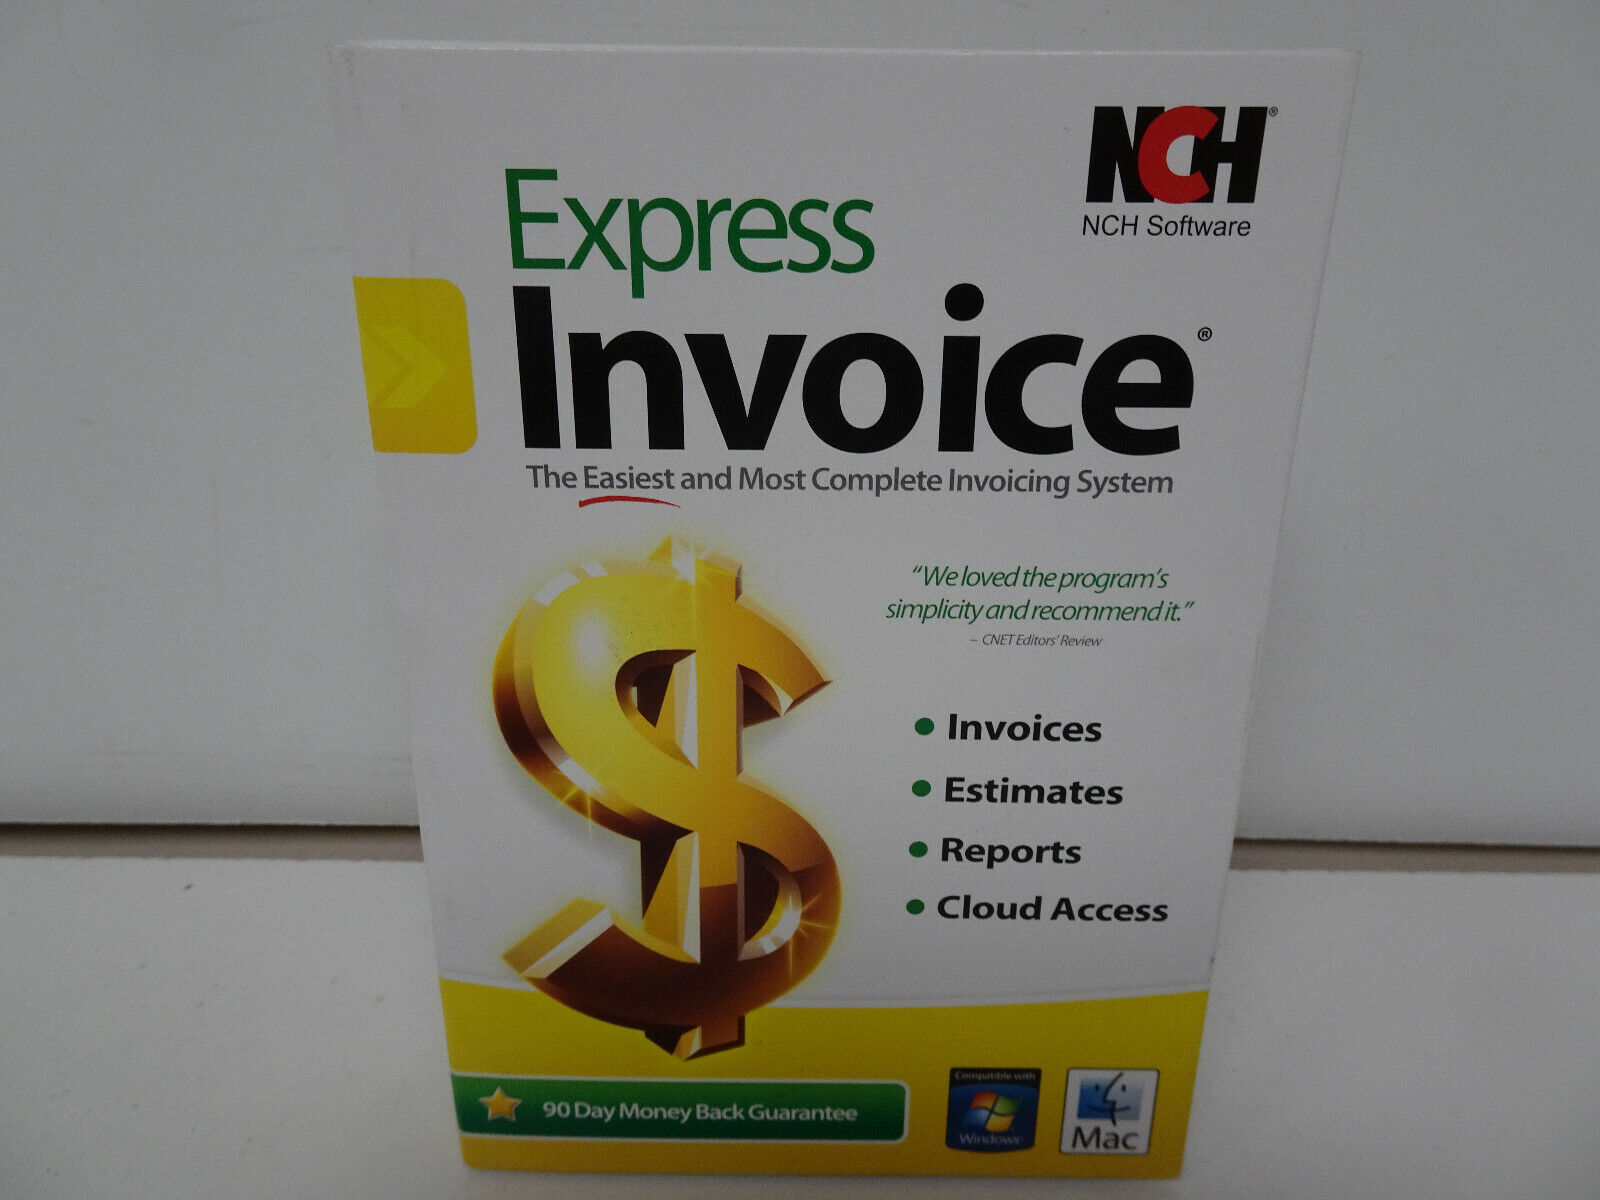 Express Invoice Plus Invoicing Software Manage invoices Mac & Windows Version